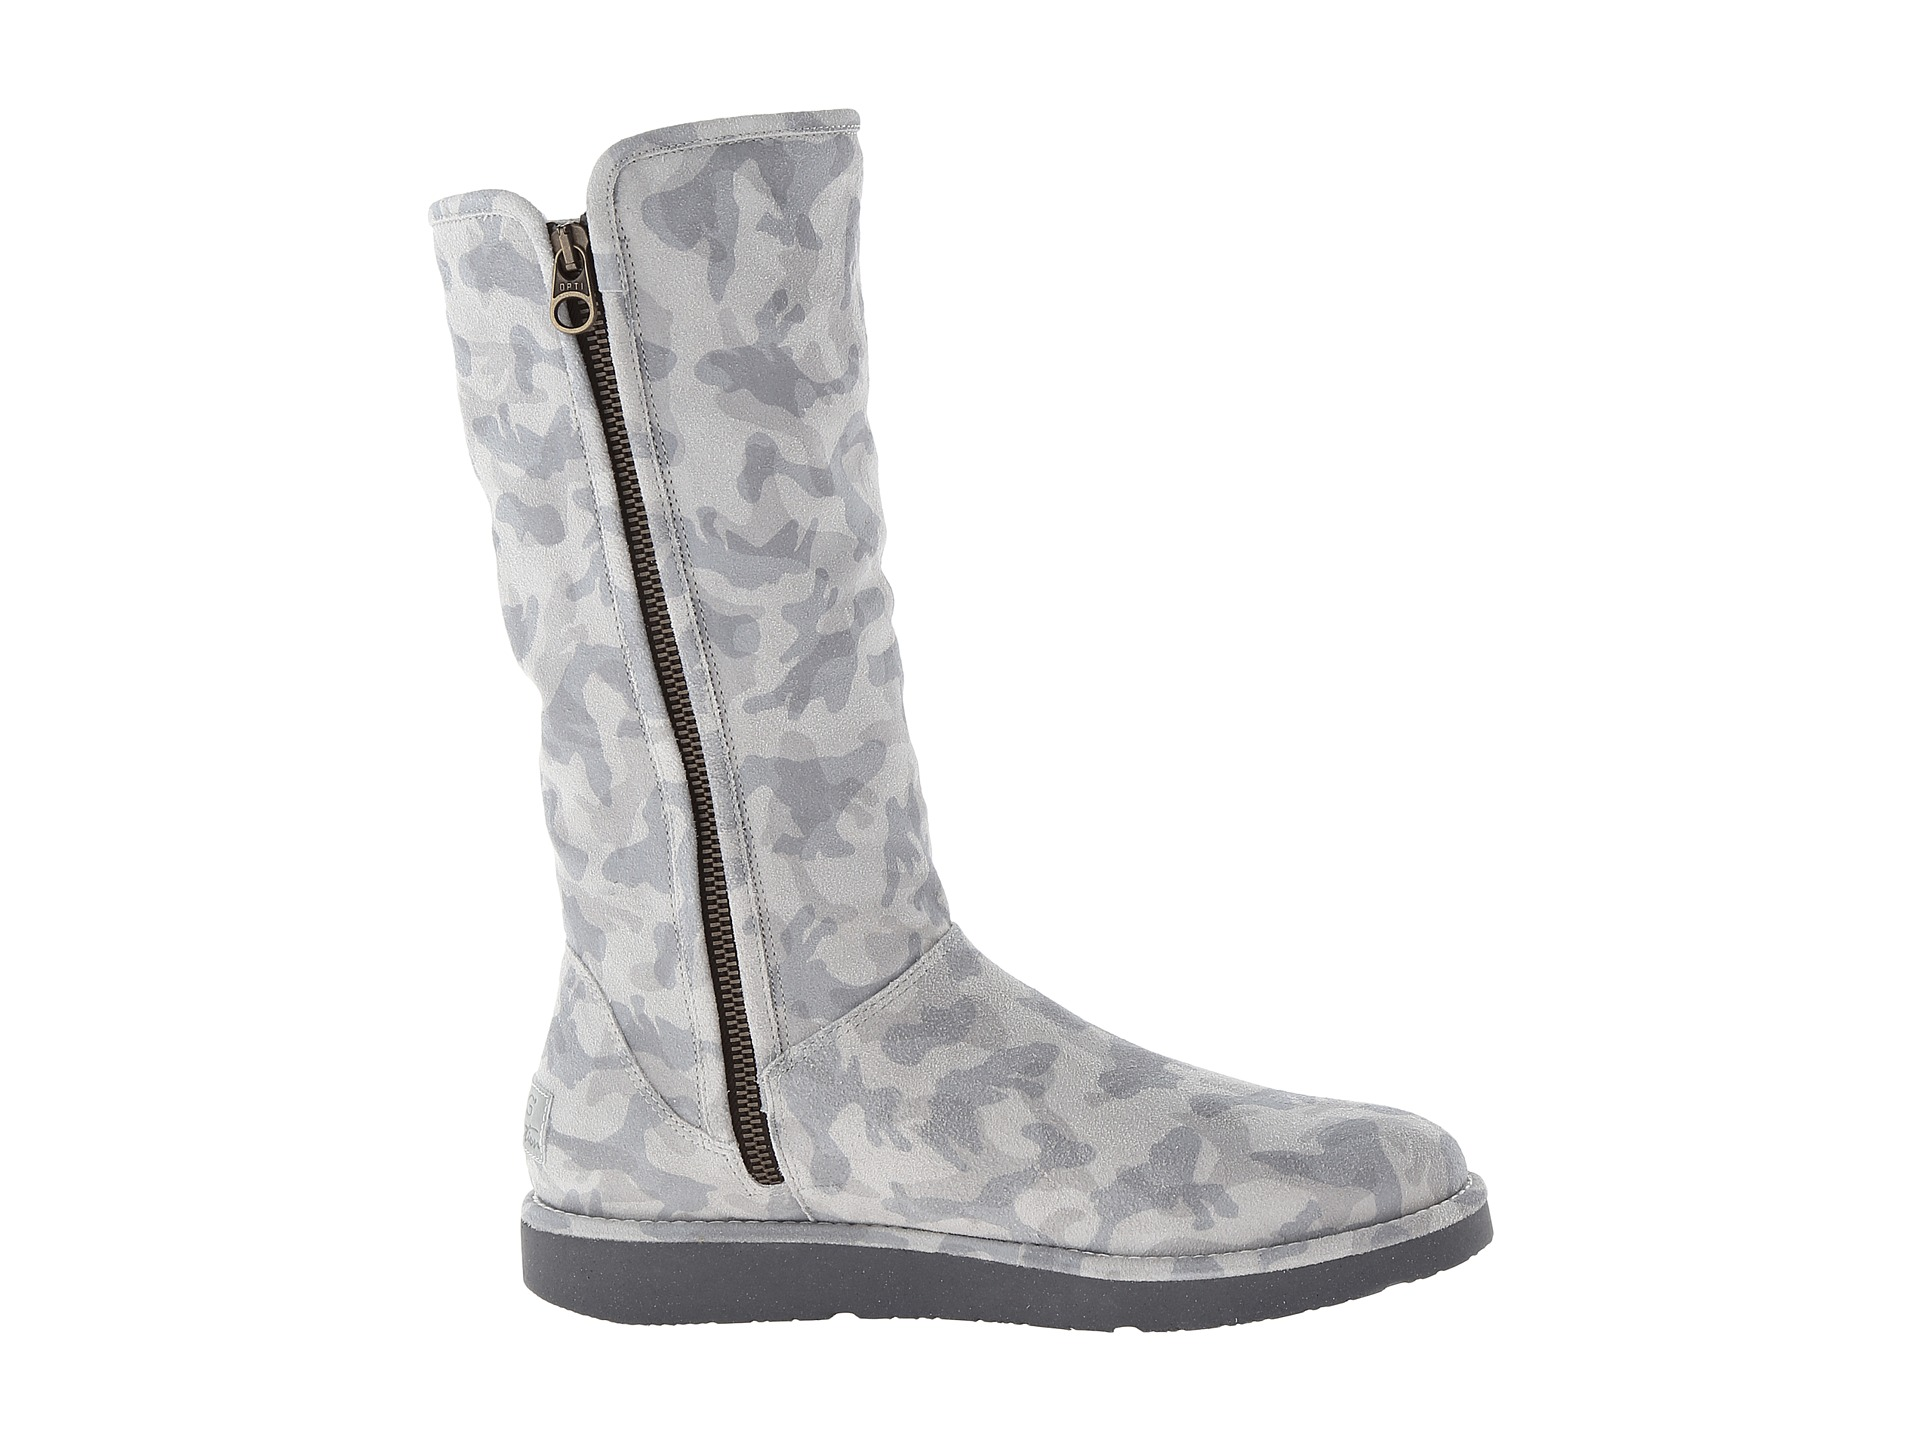 ugg collection abree camo shoes women shipped free at. Black Bedroom Furniture Sets. Home Design Ideas